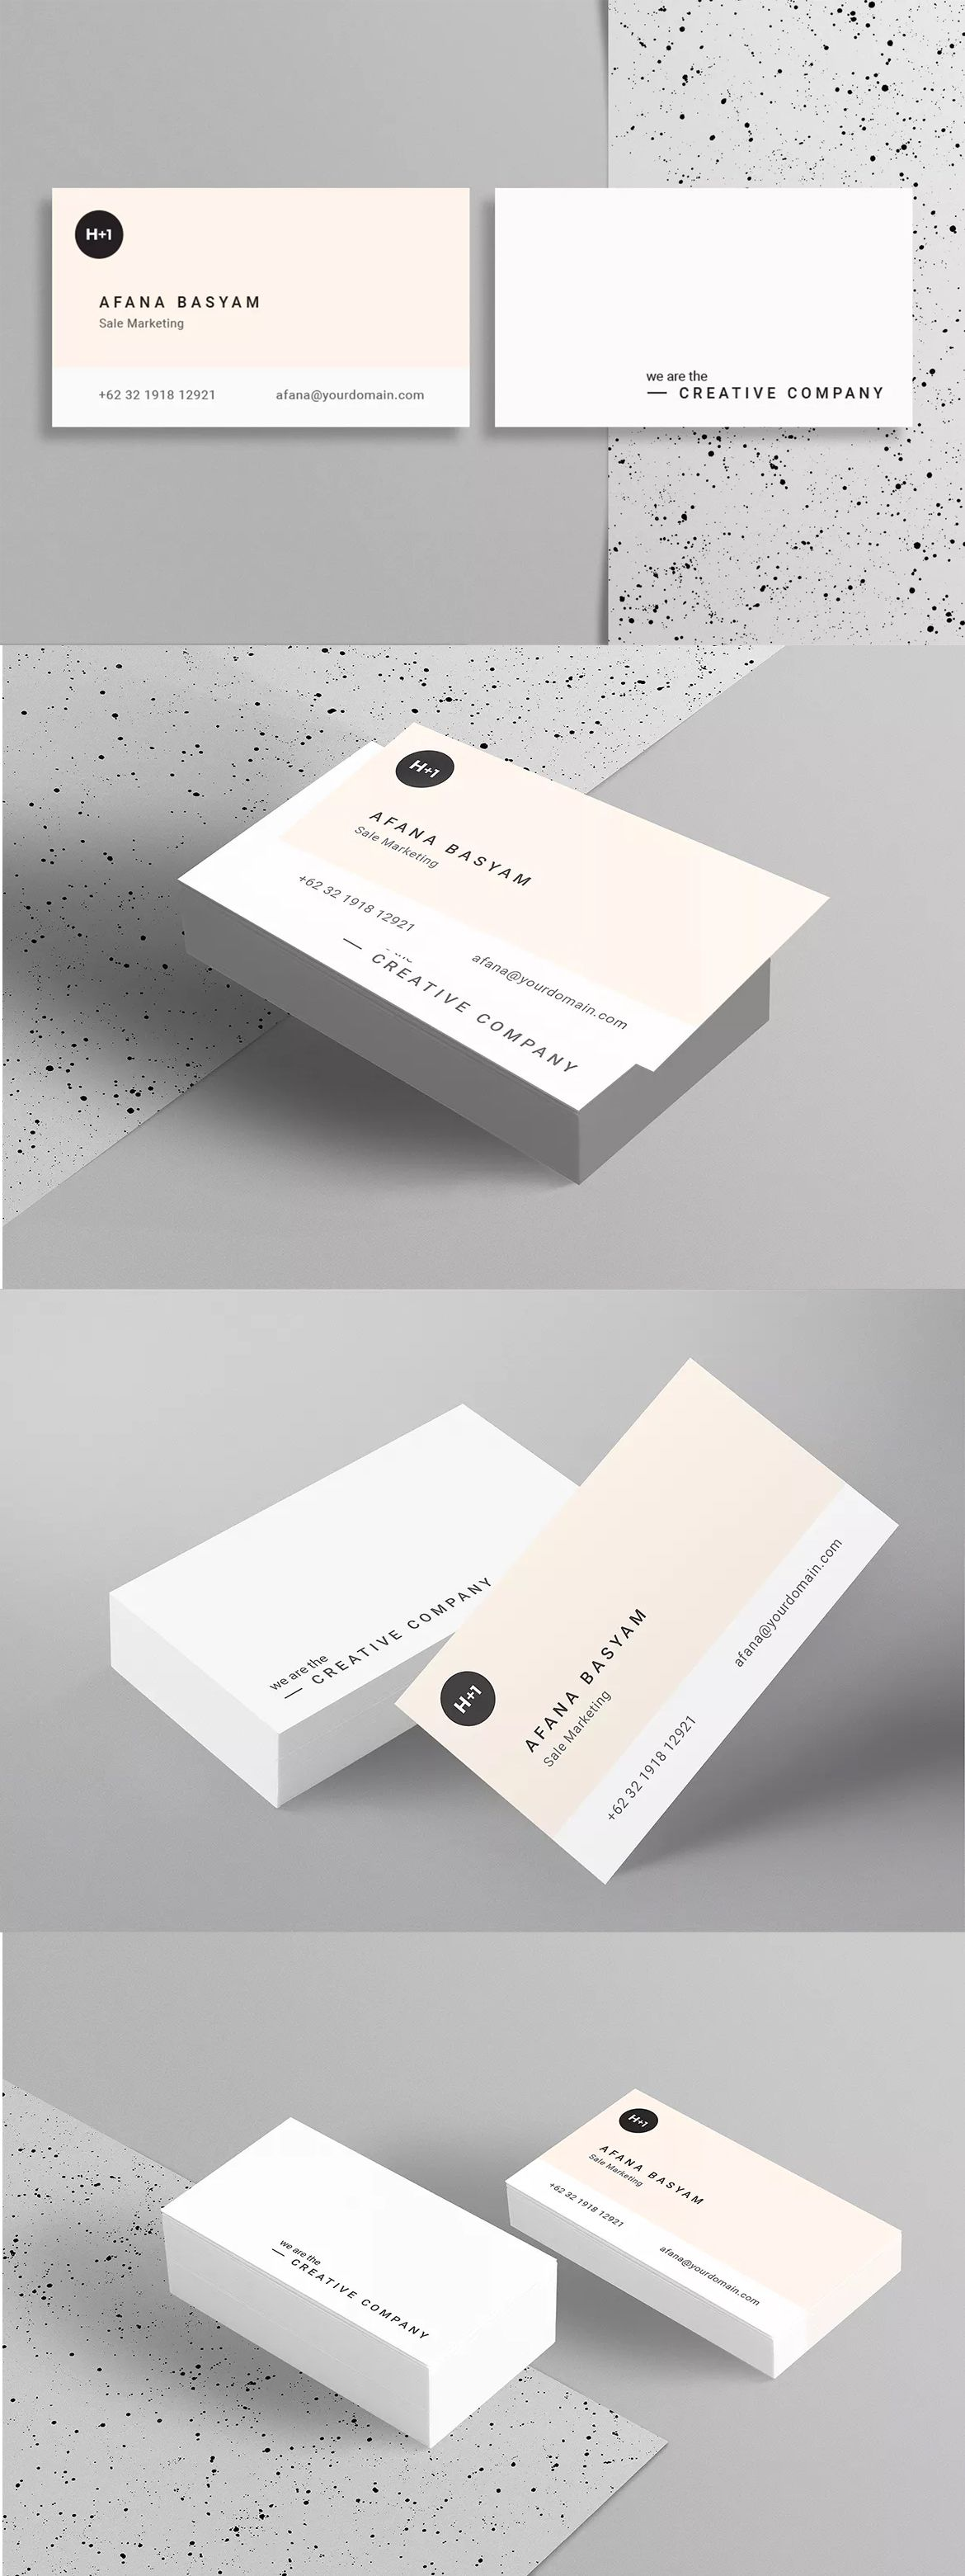 Business Card Template InDesign INDD | Business card | Pinterest